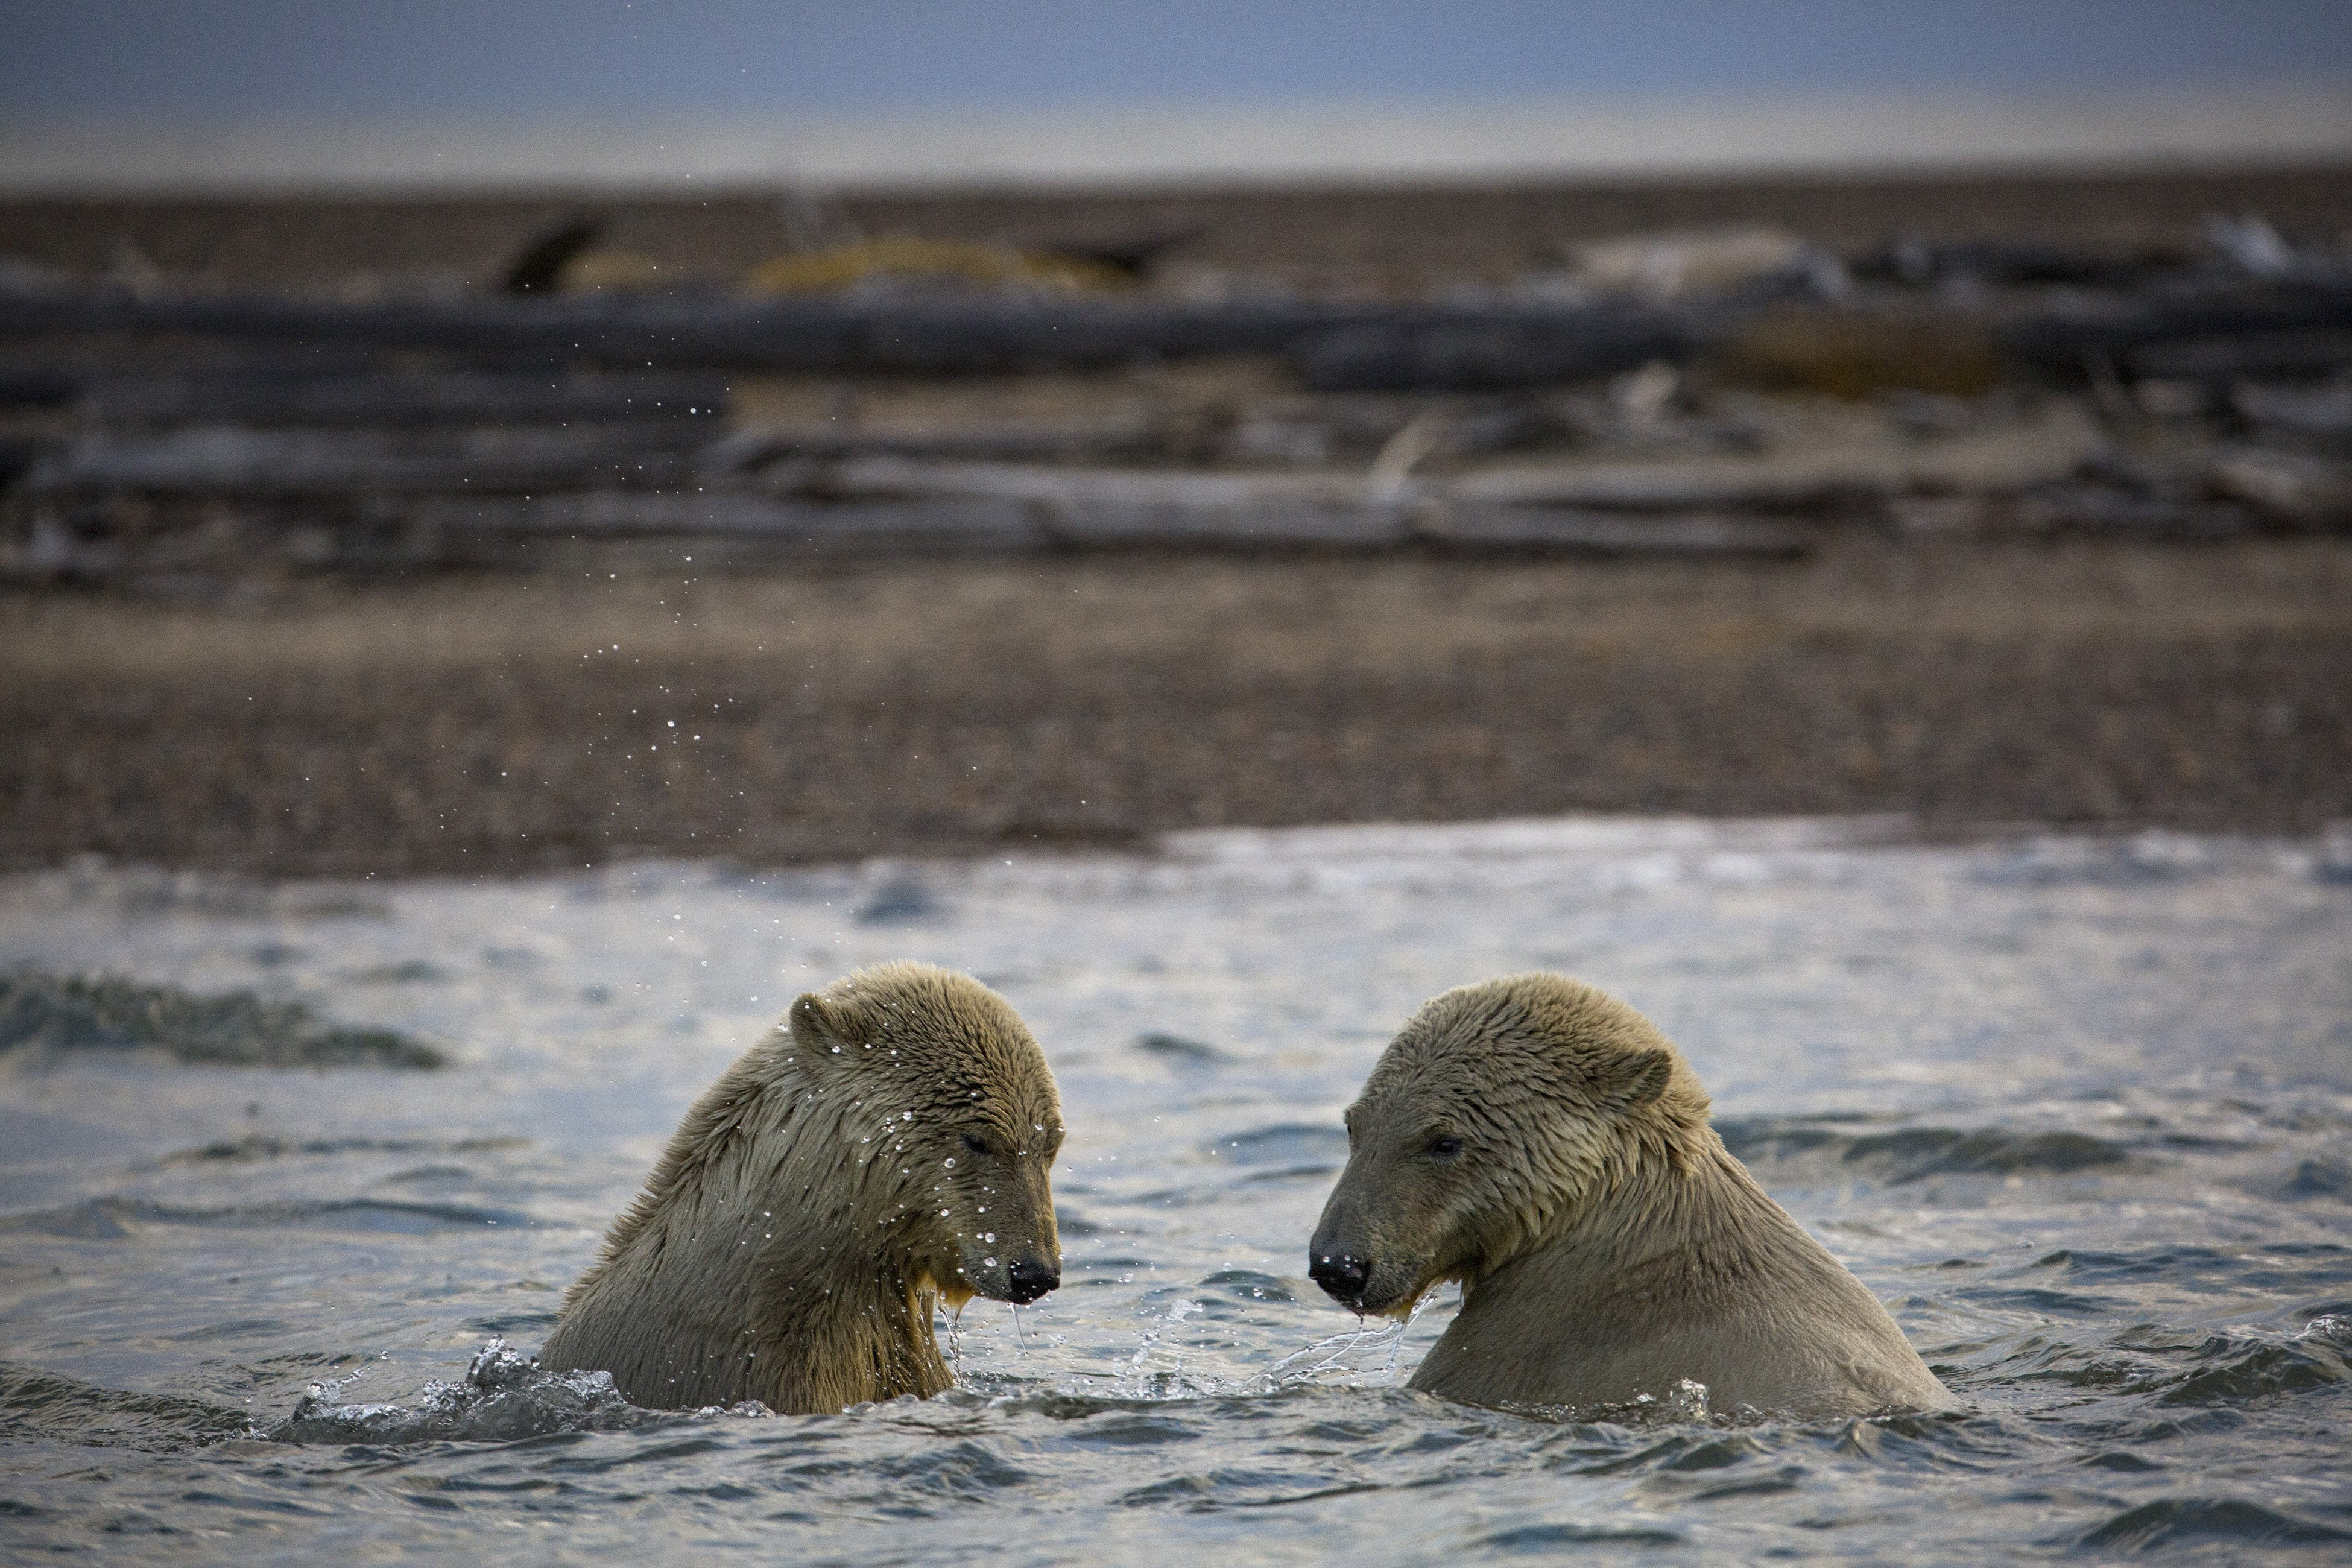 Polar bears in the waters off Kaktovik, Alaska, Sept. 11, 2016. Polar bears roam the town during the fall as climate refugees, on land because the sea ice they rely on for hunting seals is receding. (Josh Haner/The New York Times)